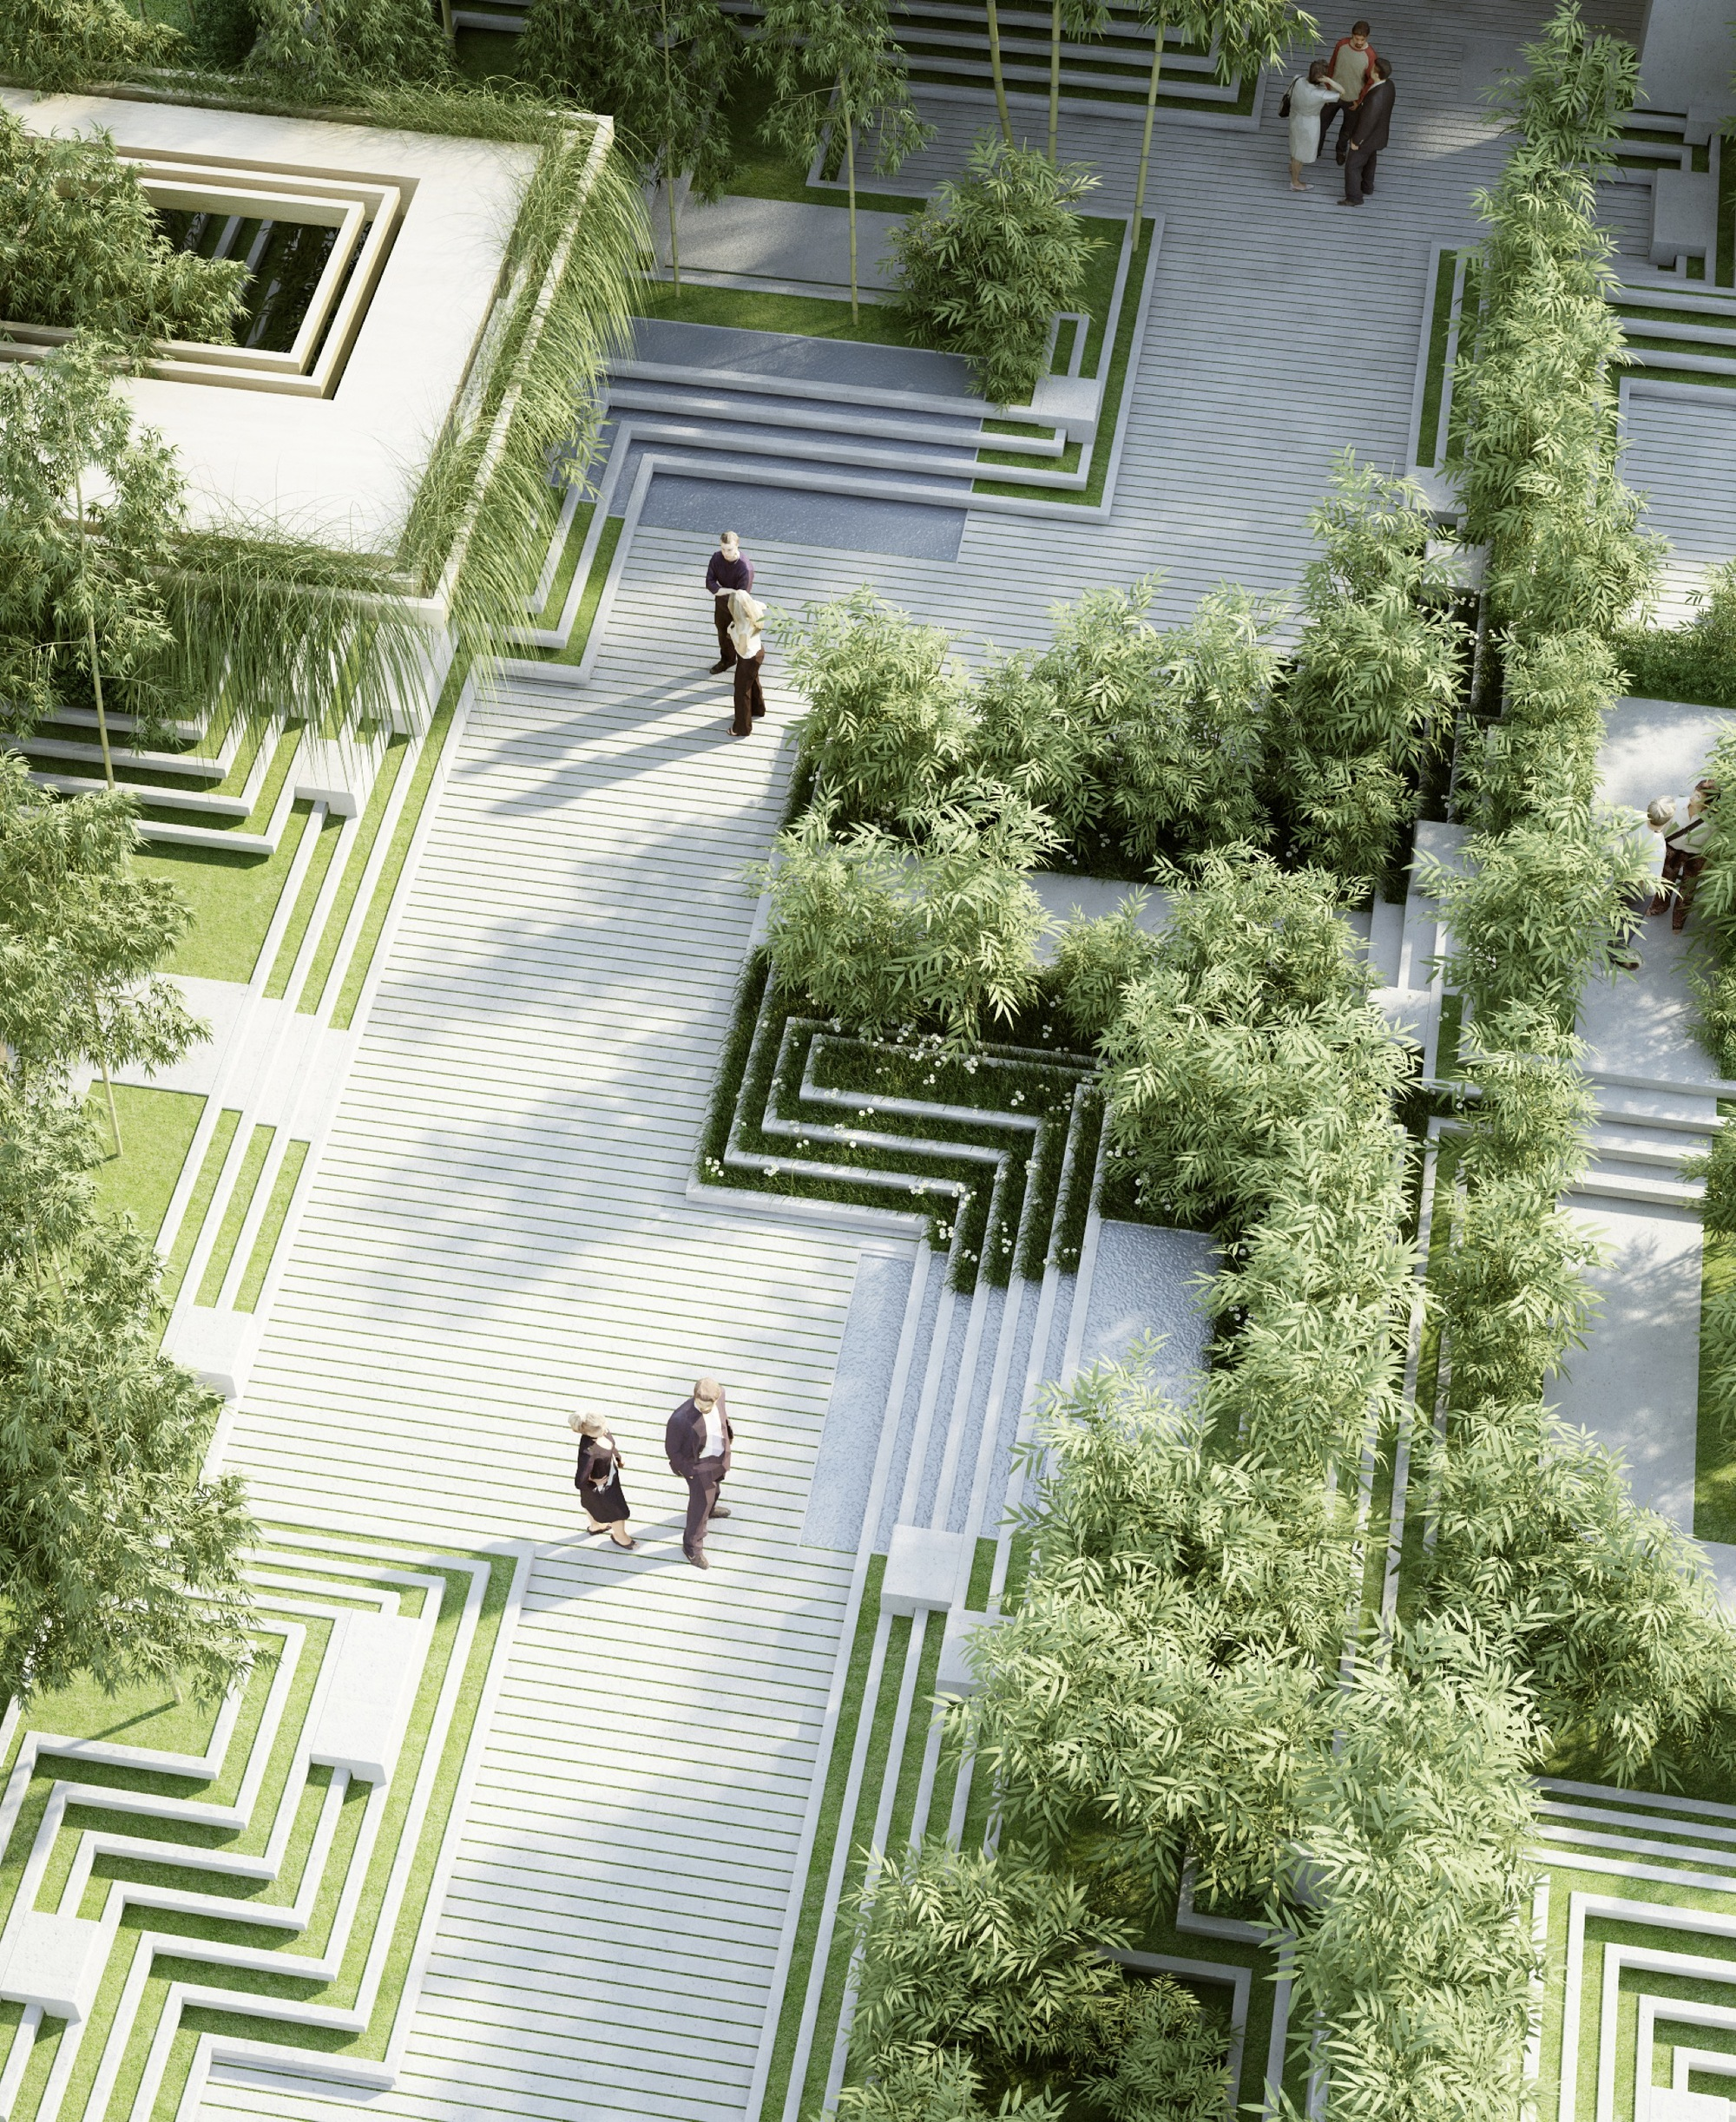 A New Landscape By Penda Is Inspired By Indian Stepwells